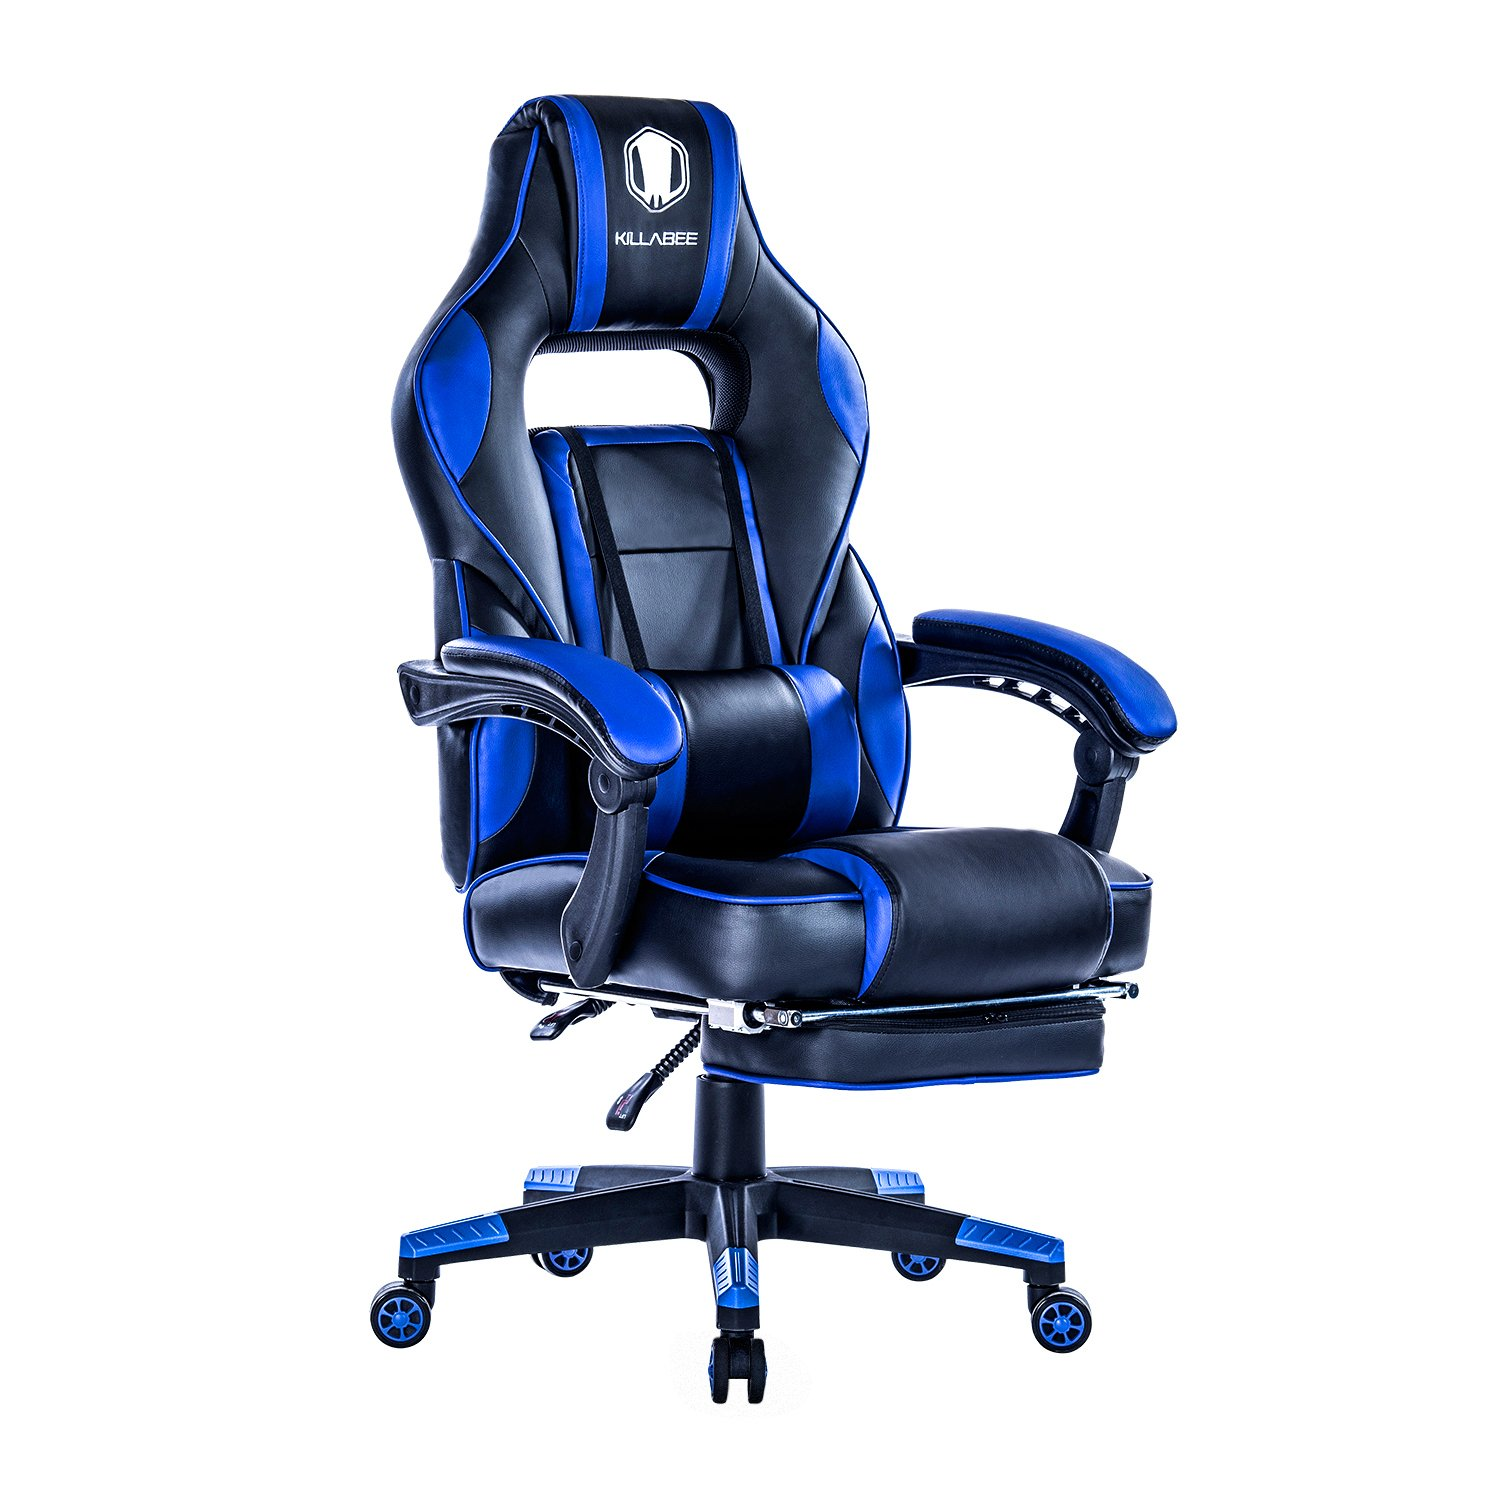 KILLABEE Reclining Racing Gaming Chair - Ergonomic High-back Office Computer Desk Chair with Retractable Footrest and Adjustable Lumbar Cushion, Blue&Black